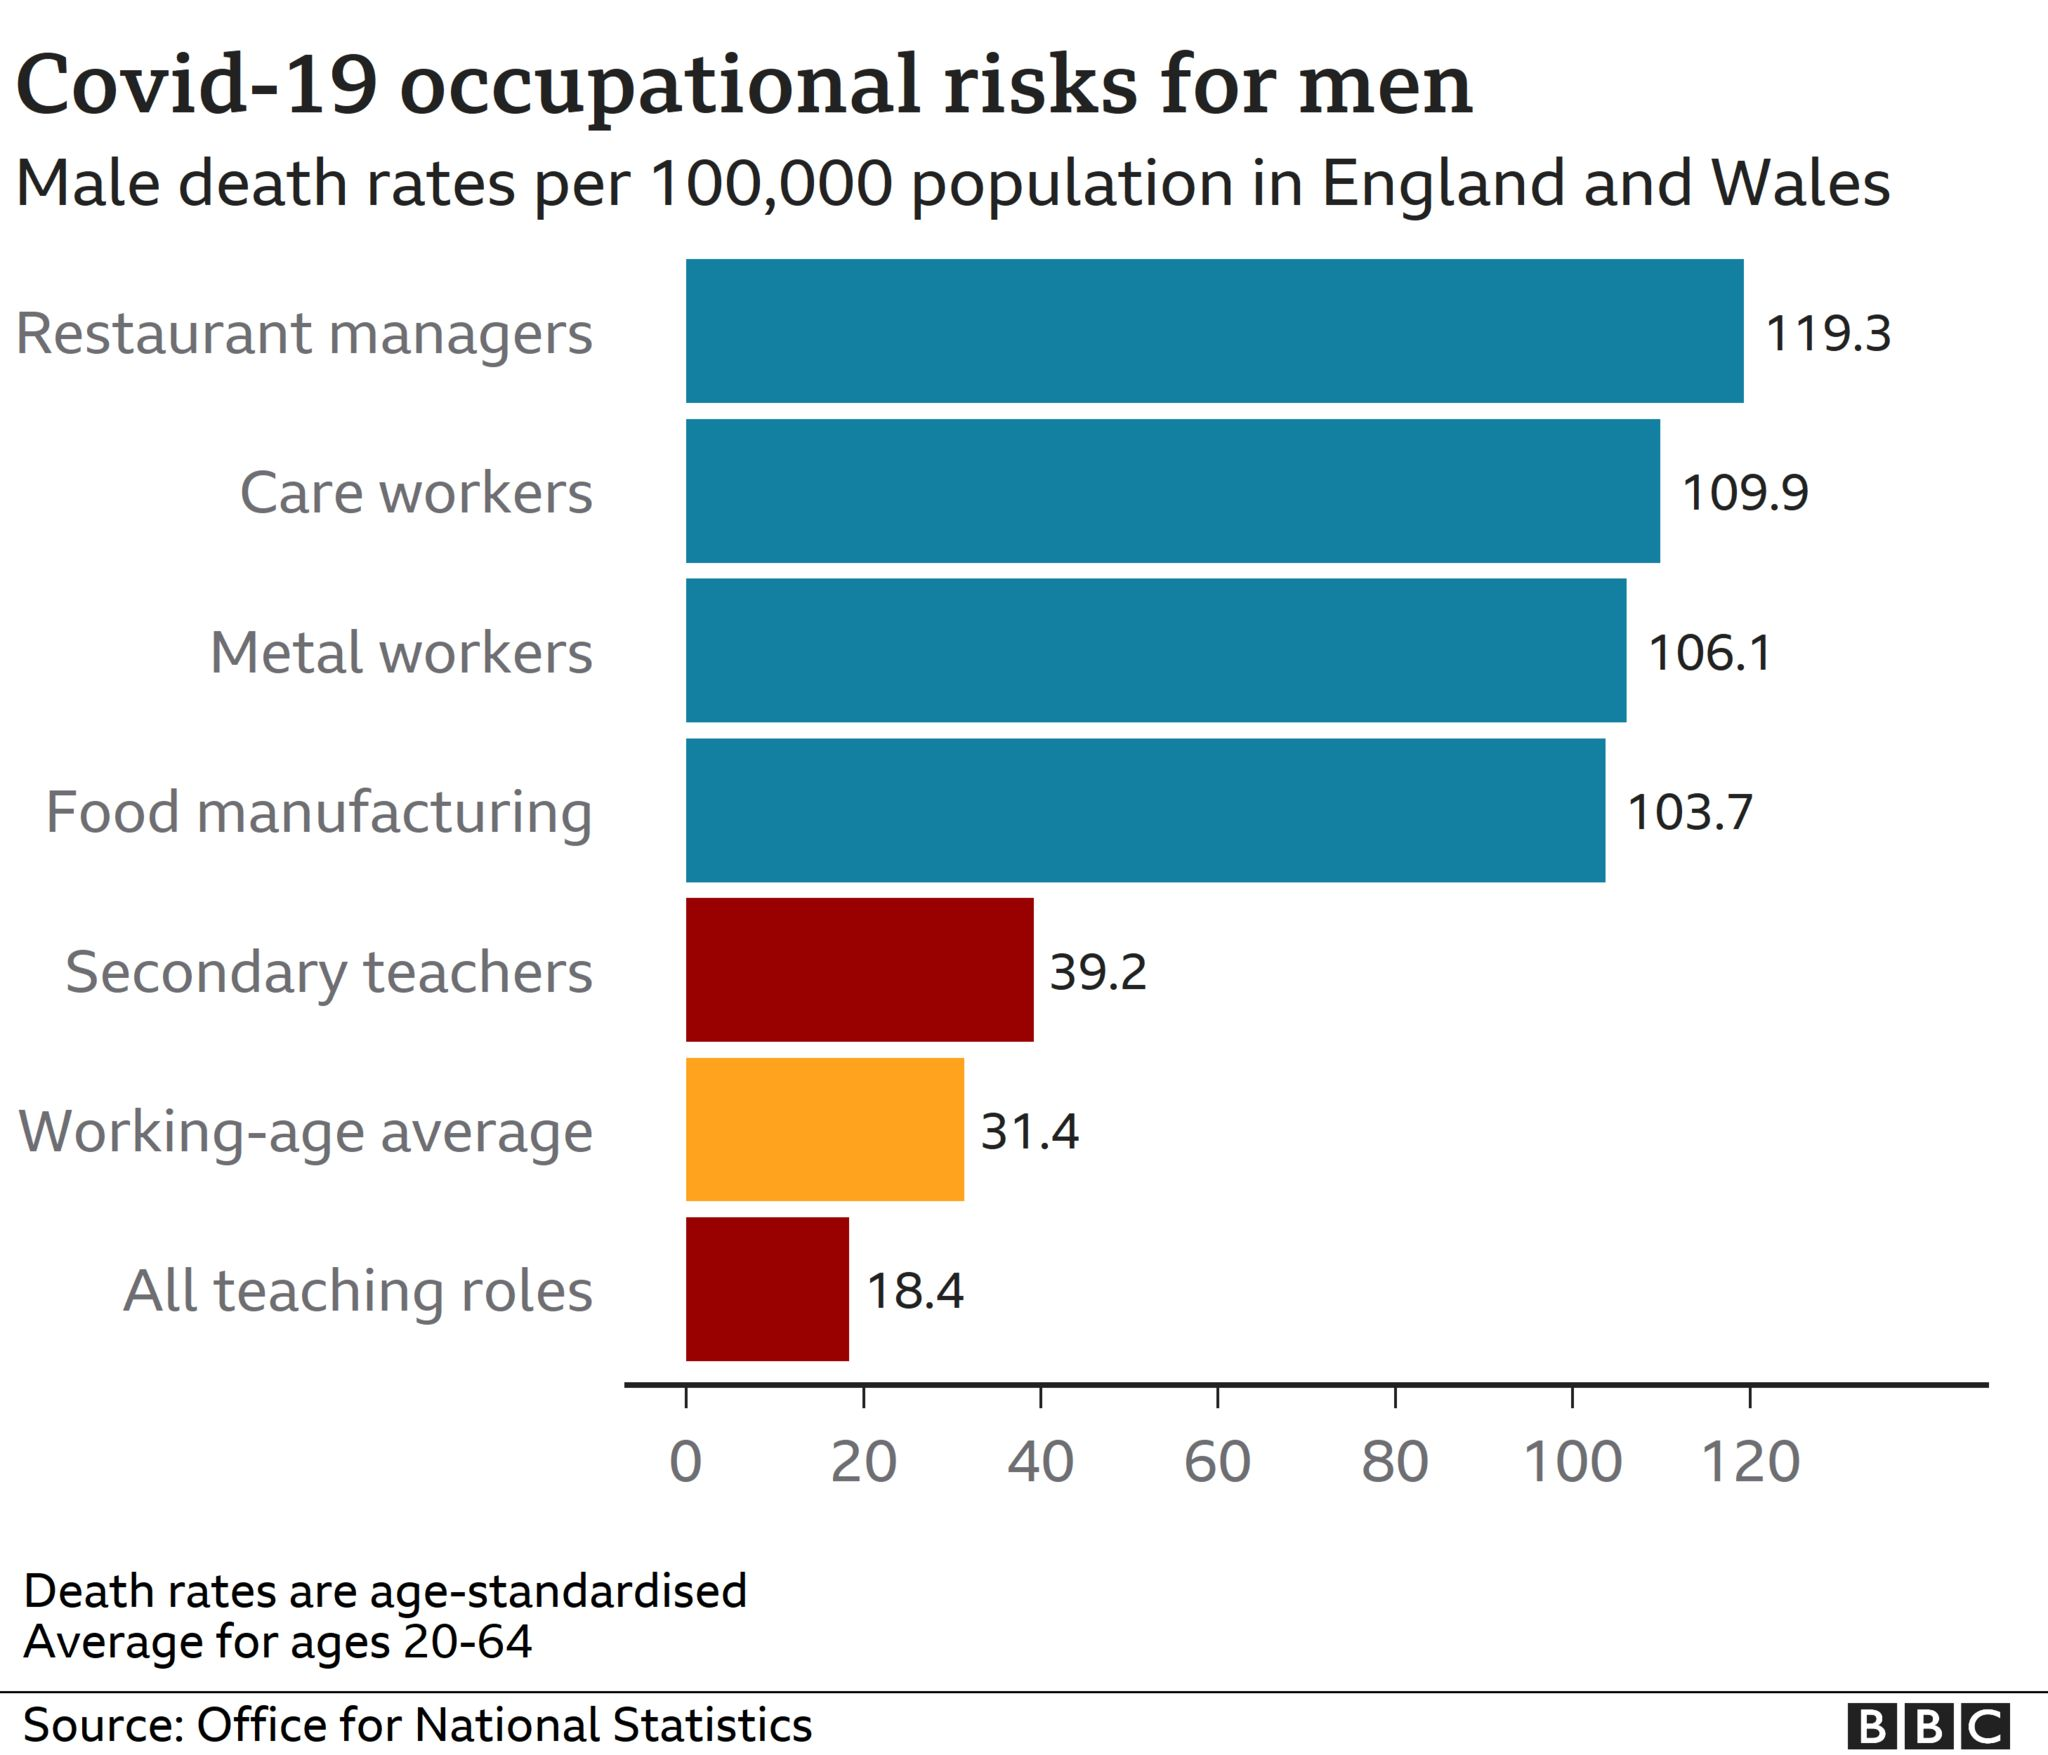 Chart showing Covid occupational risks for men